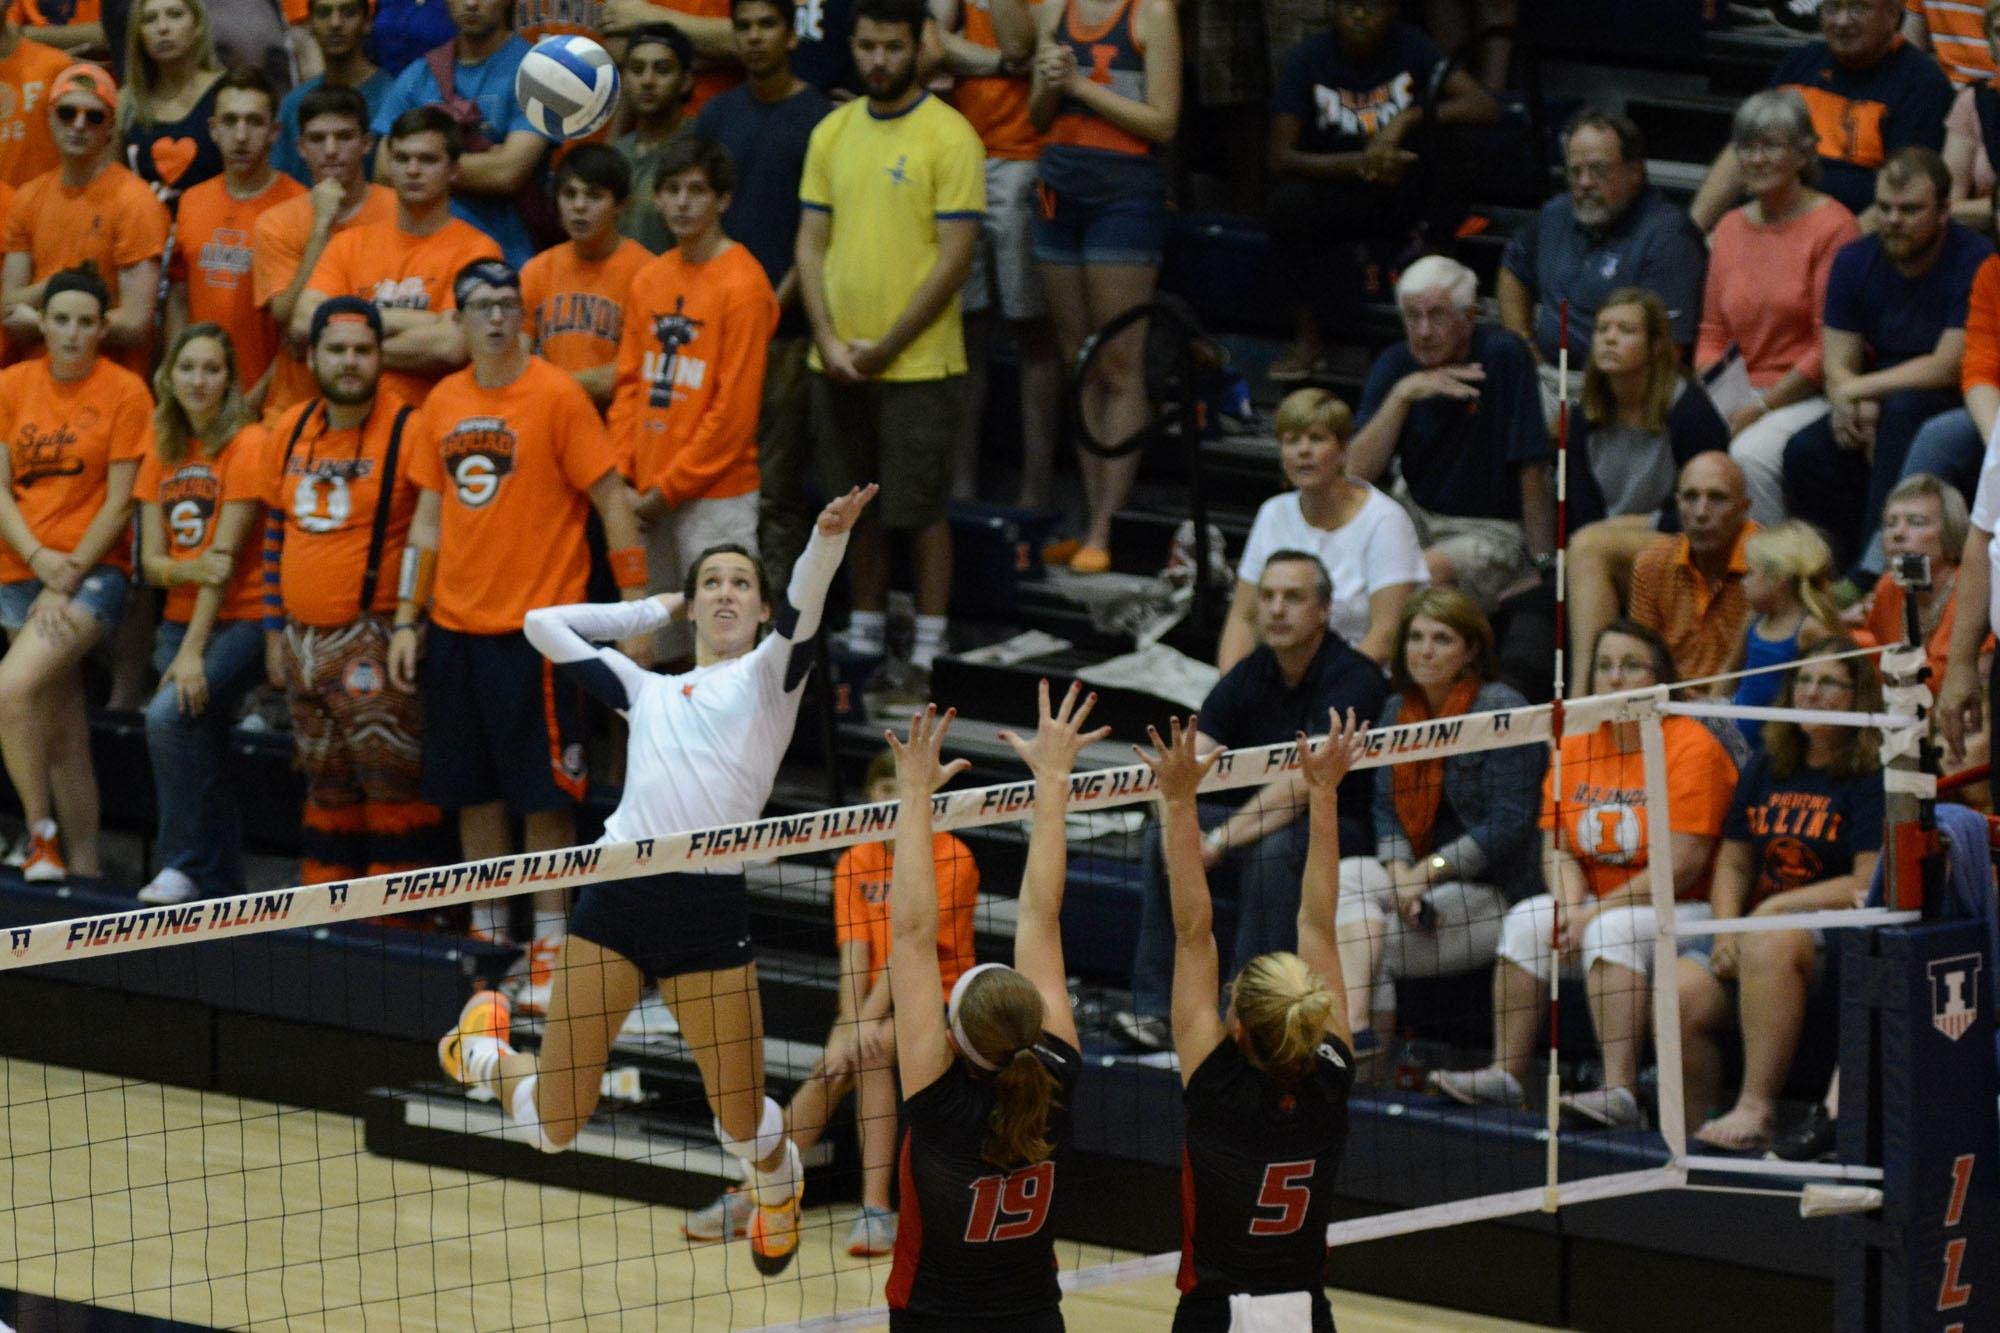 Illinois' Michelle Strizak (4) attempts to spike the ball during the game versus Louisville at Huff Hall on Friday, August 28, 2015.The Illini won 3-0.